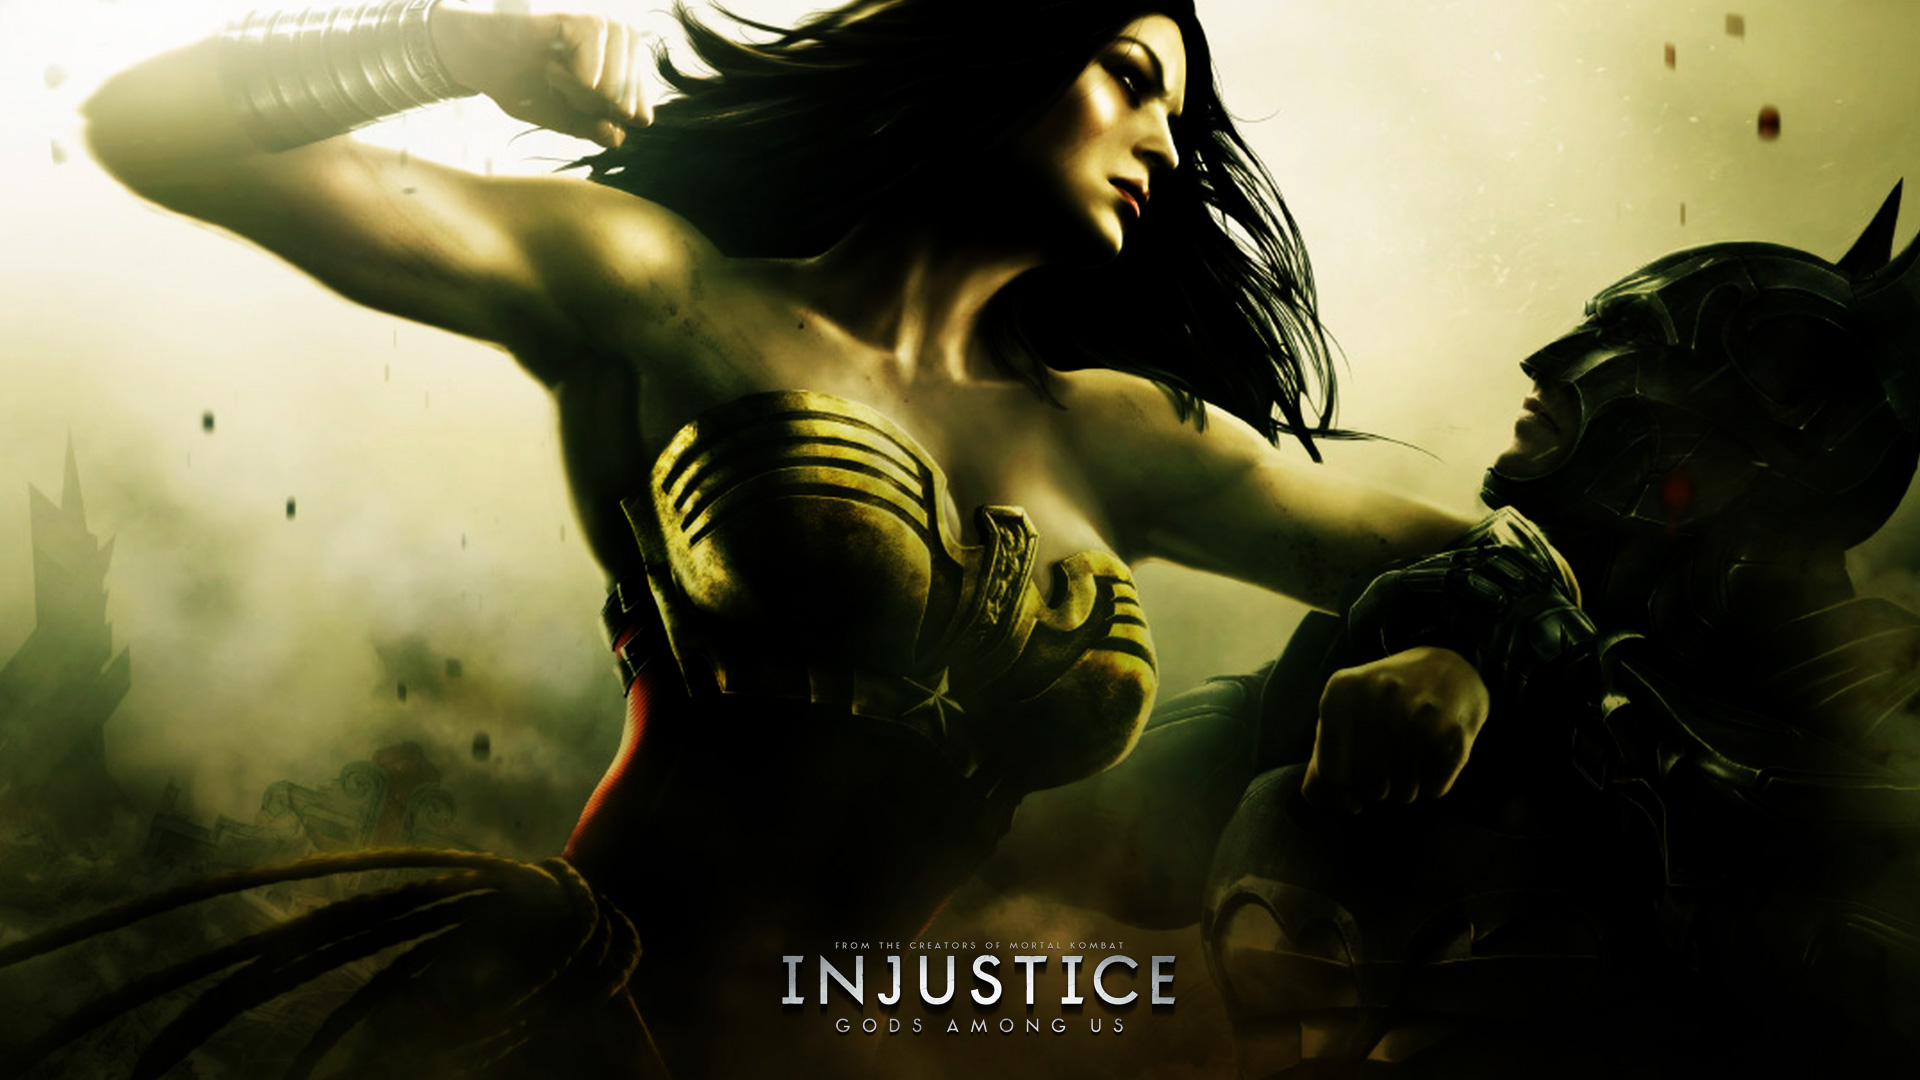 Injustice: Gods Among Us Wallpaper in 1920x1080